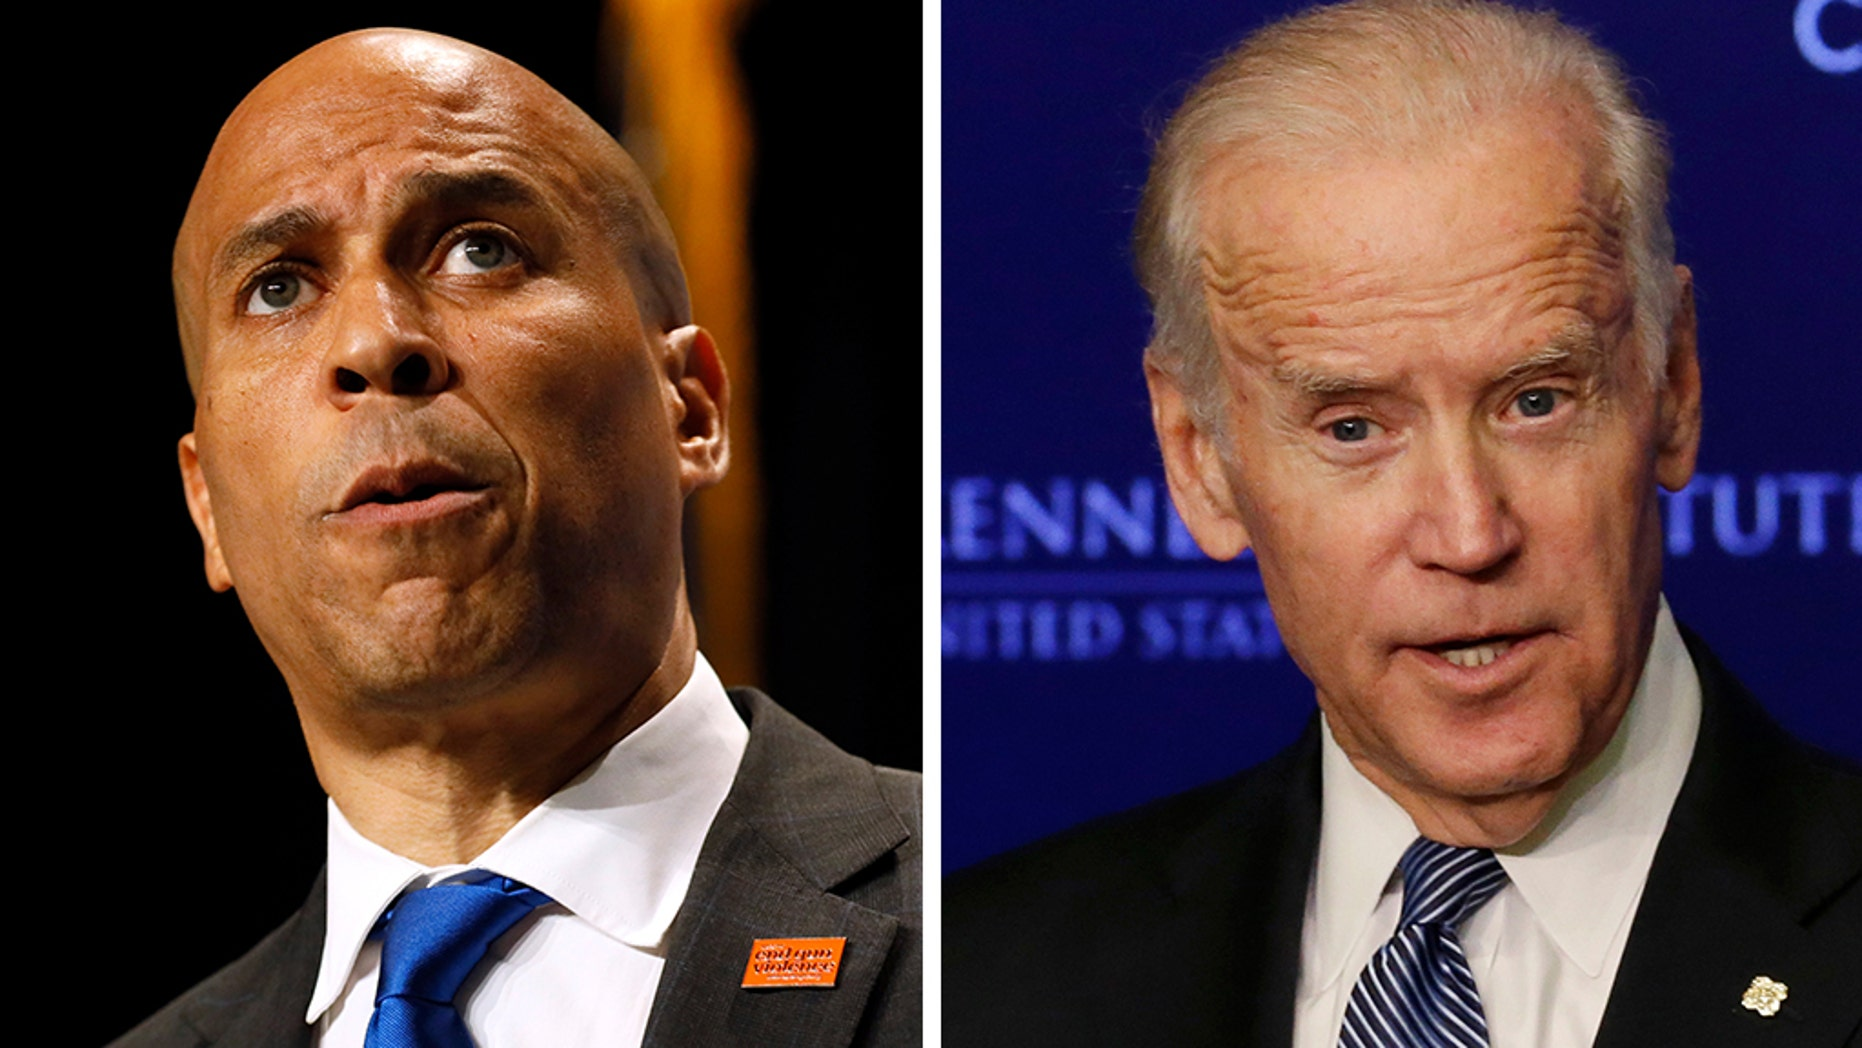 2020 Democratic carefree Cory Booker has churned emotions about Joe Biden's reparation per his argumentative statements on race